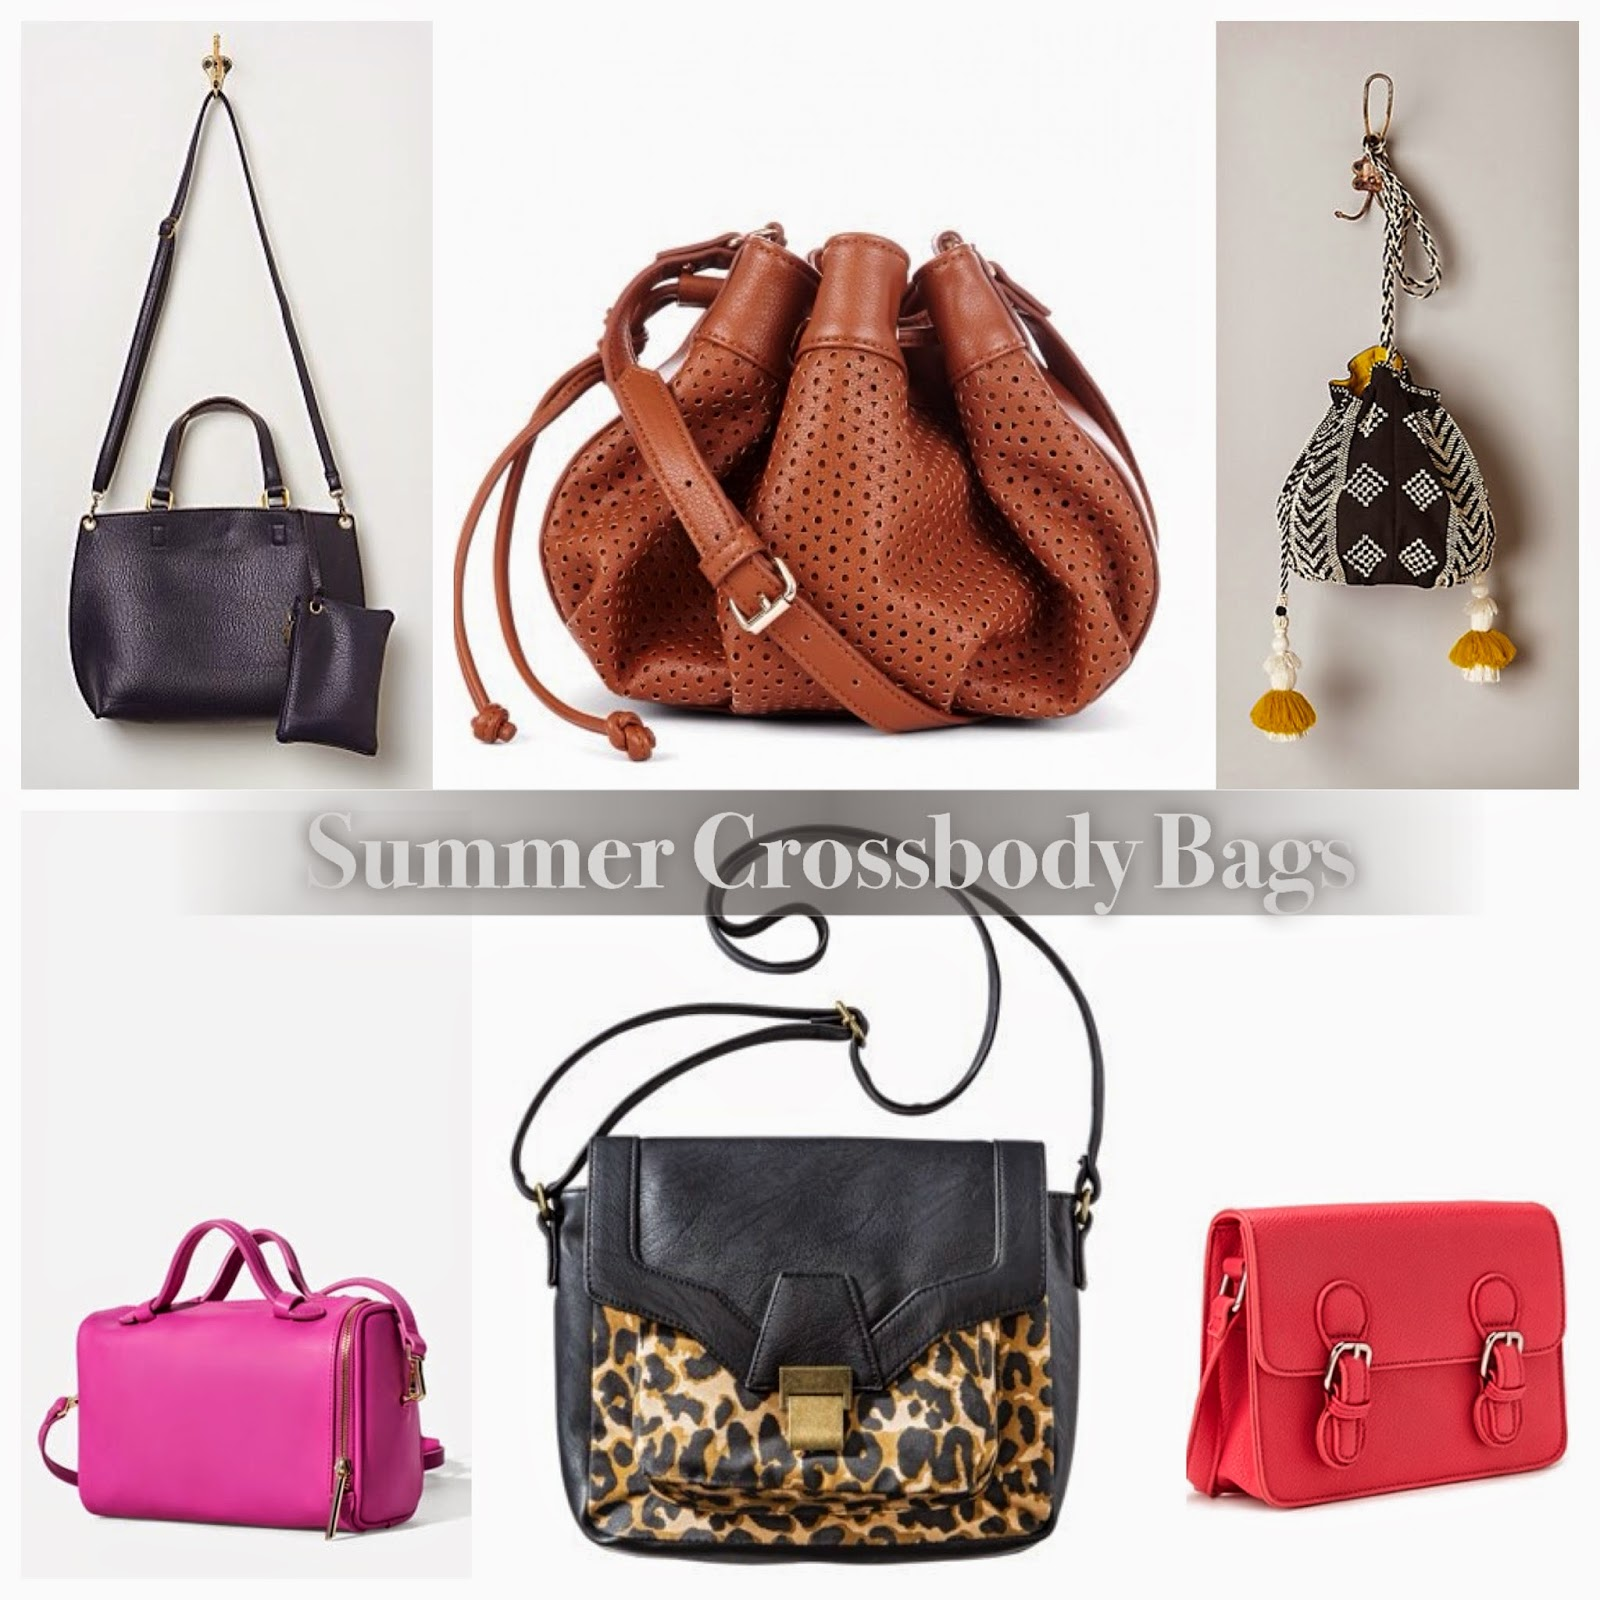 Quirky At Large: Affordable Crossbody Bags for the Summer